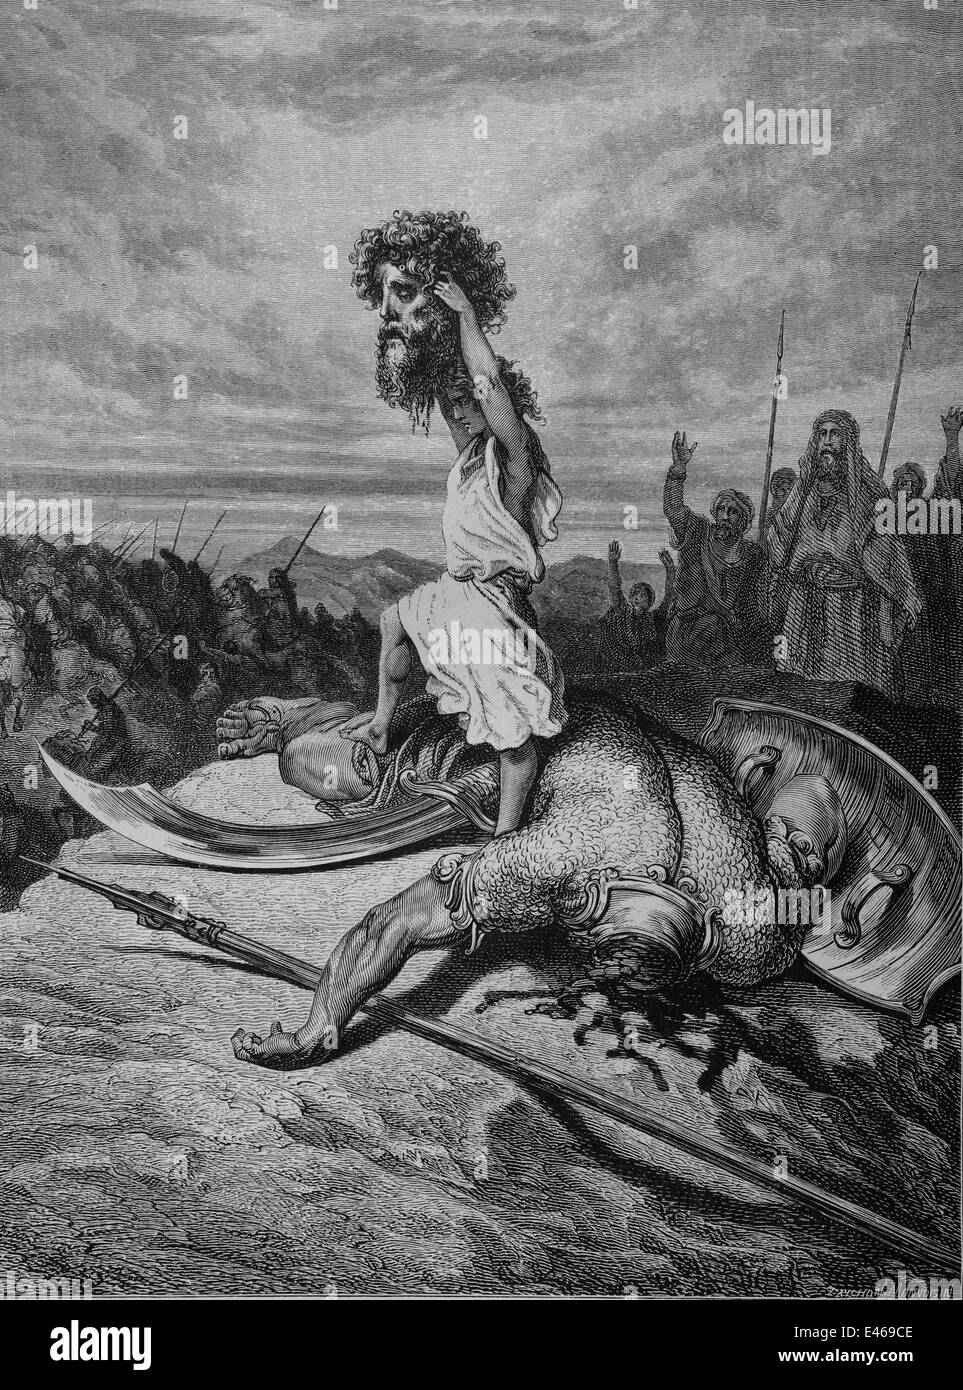 bible david and goliath i samuel 17 49 51 engraving by